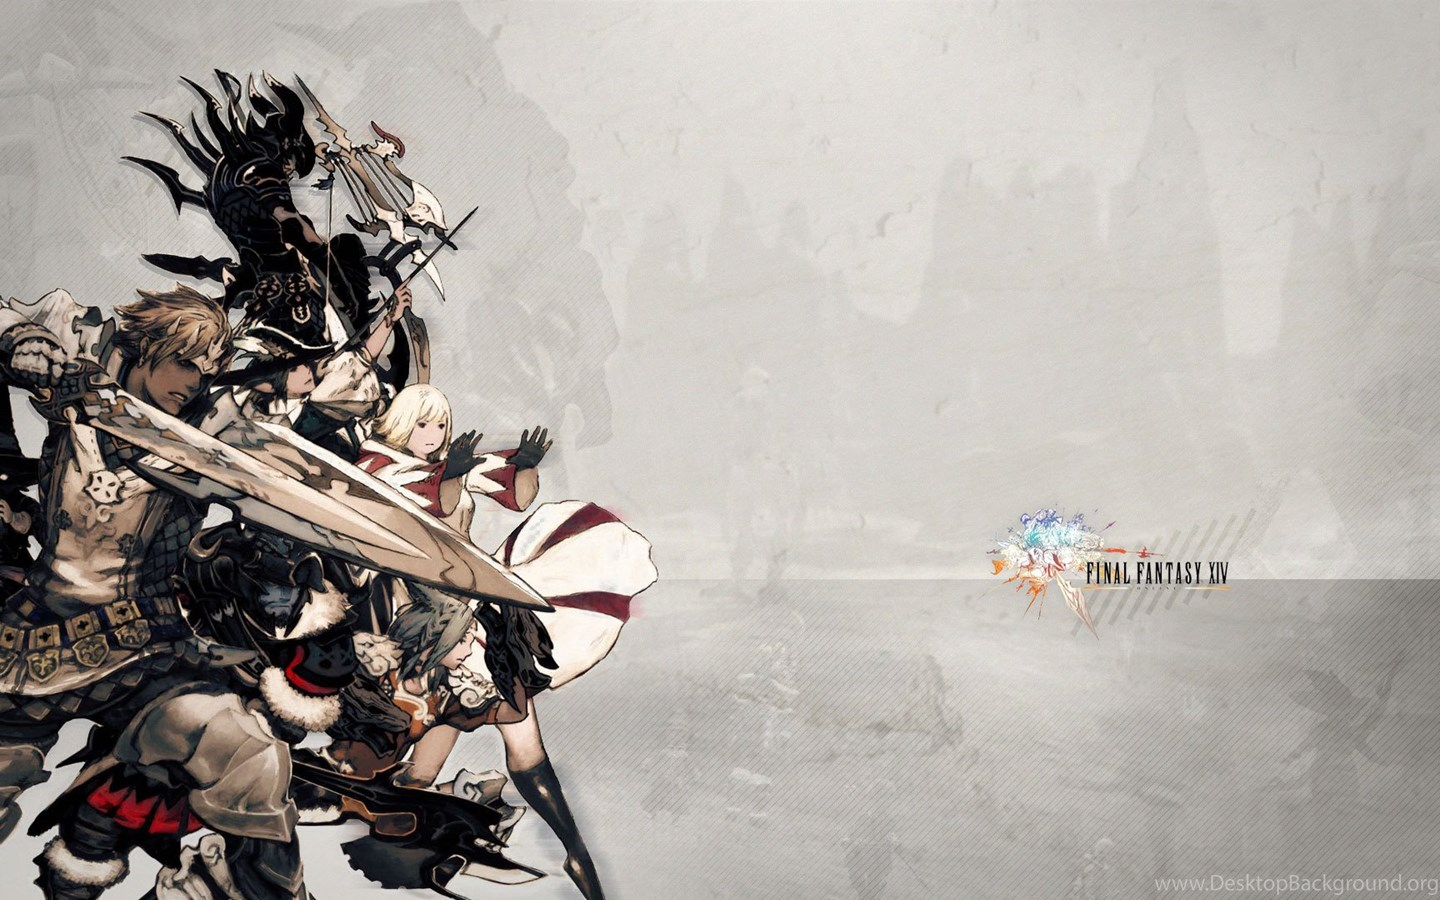 Final Fantasy Xiv Artwork 1920x1080 Hd Wallpapers And Free Stock